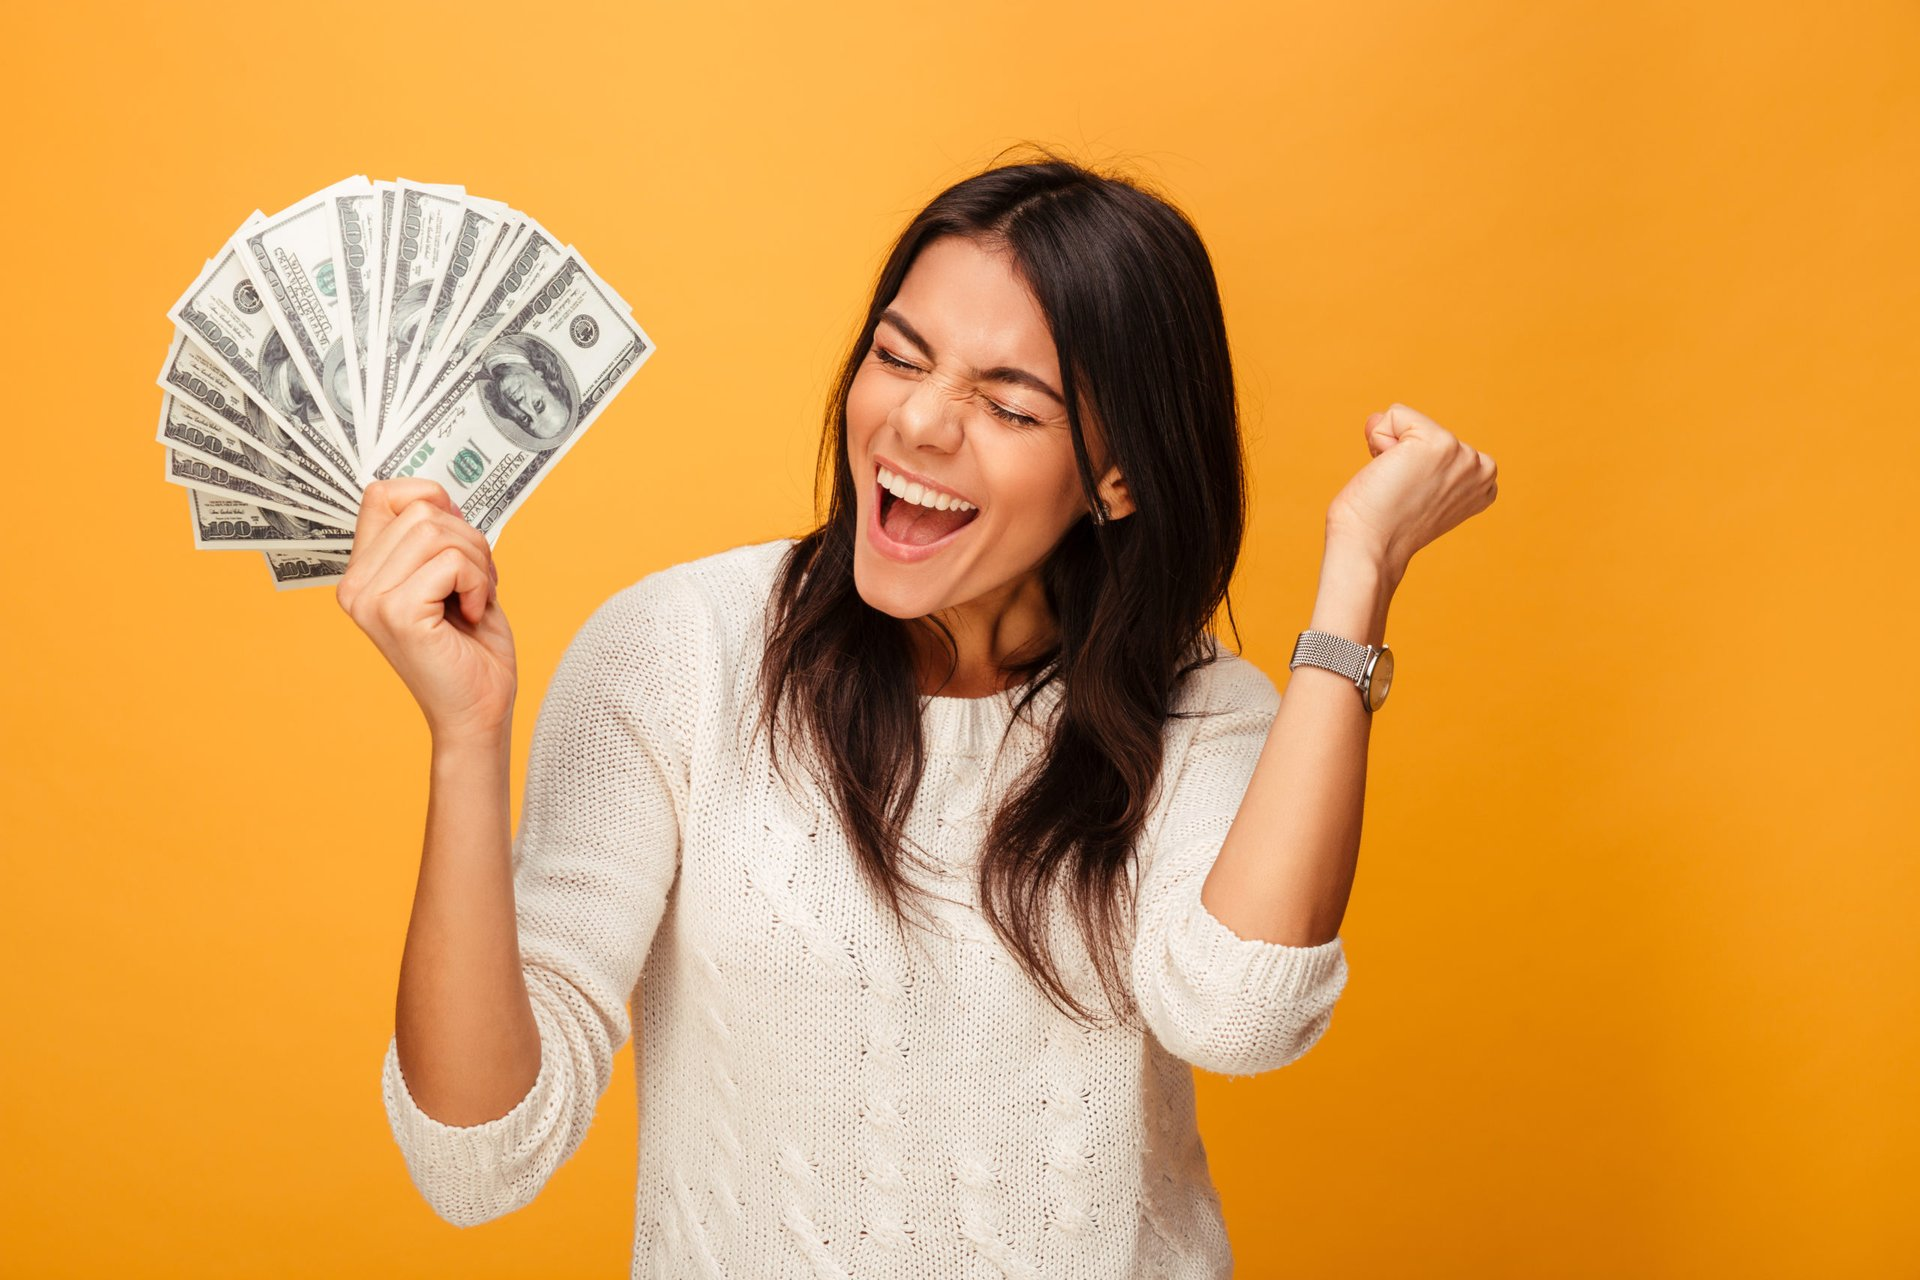 Happy woman holding hundred dollar bills